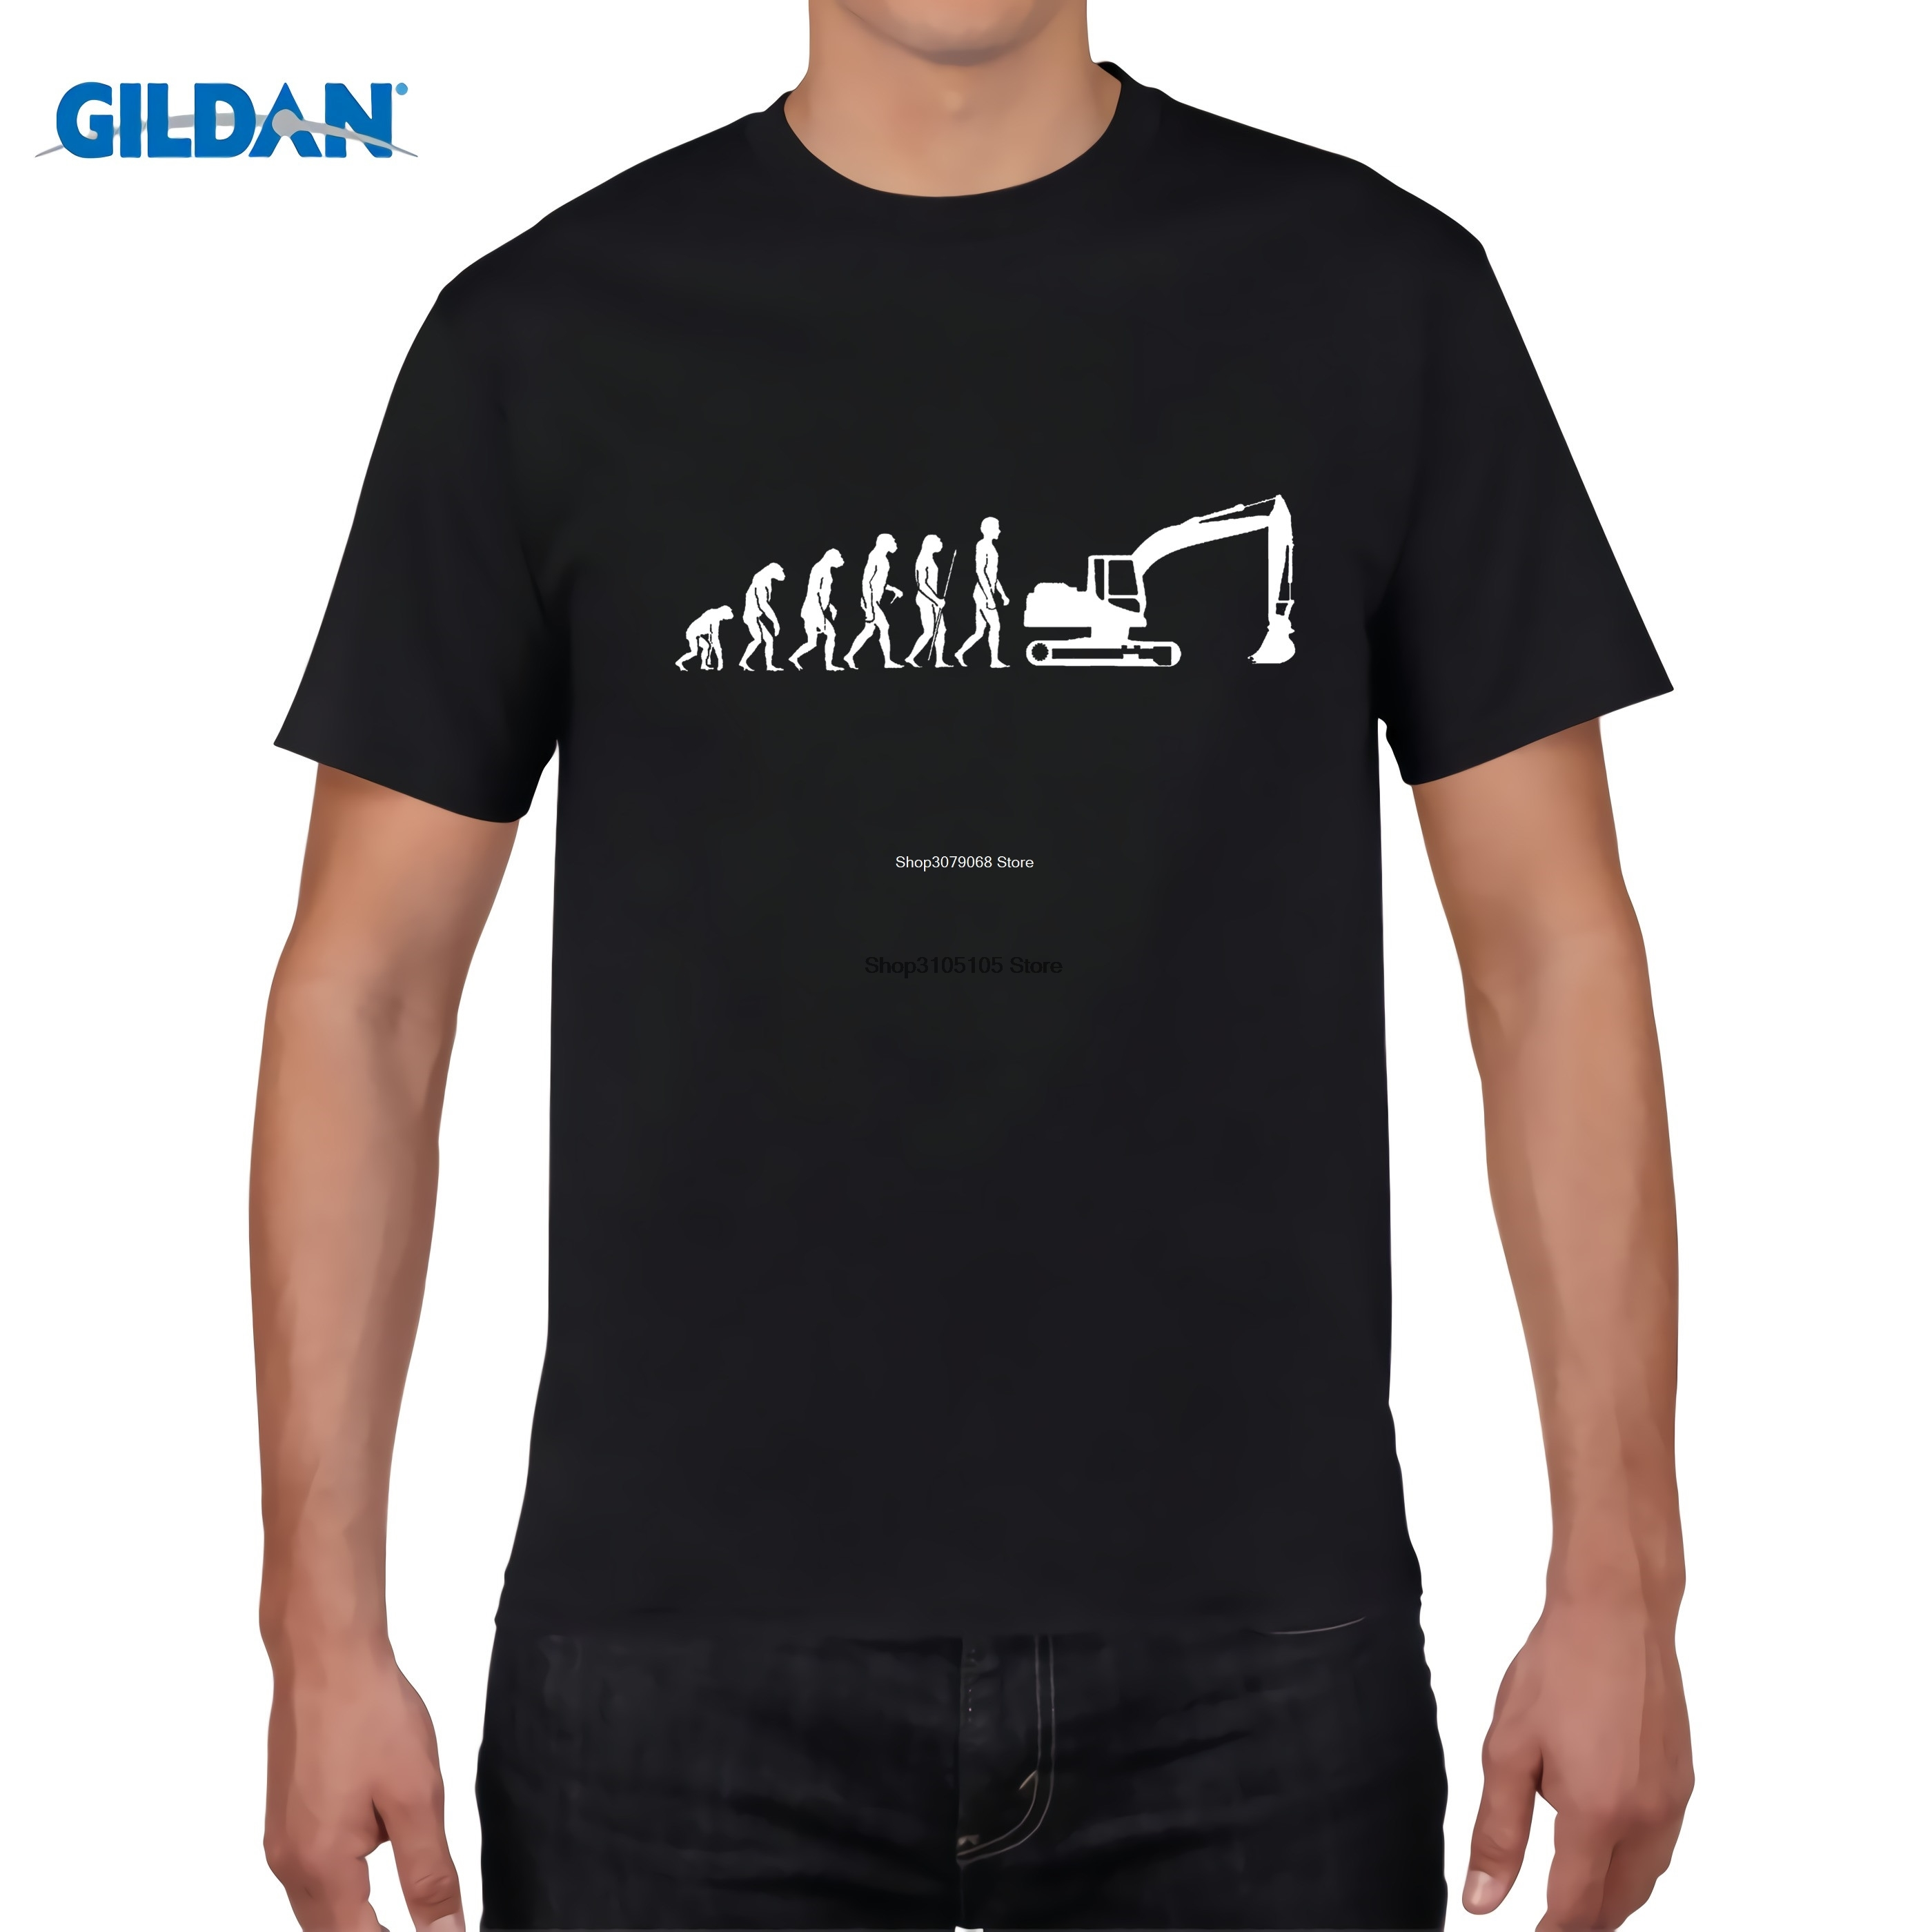 GILDAN designer t shirt Evolution T-Shirt Excavator Construction Vehicle Machine Caterpillar Construction Worker Hobby Tee Shirt